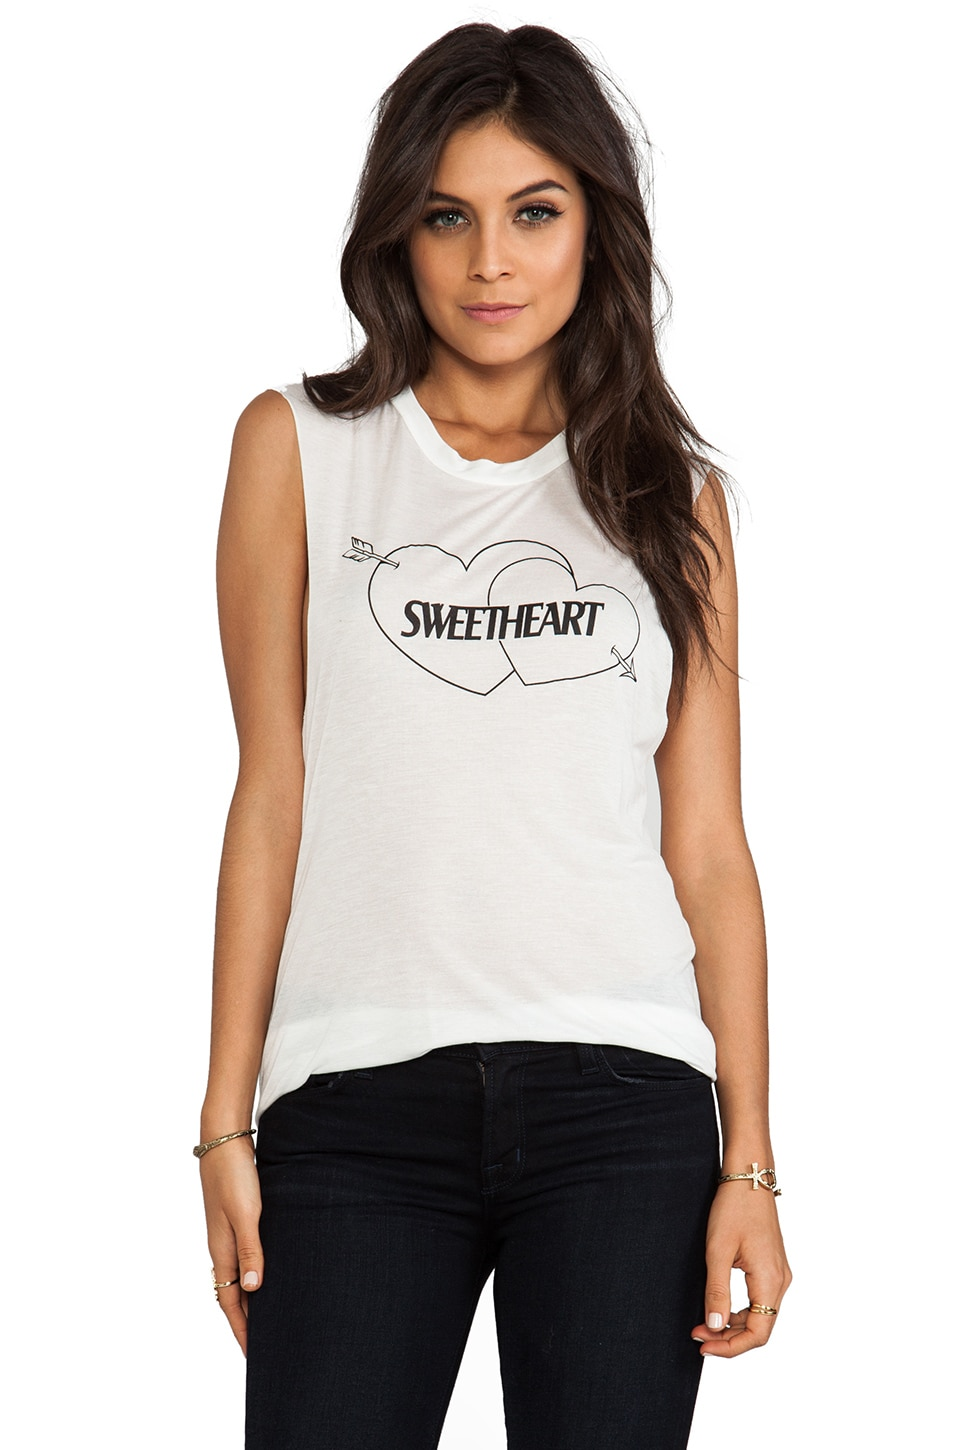 A Fine Line Sweetheart Tank in White